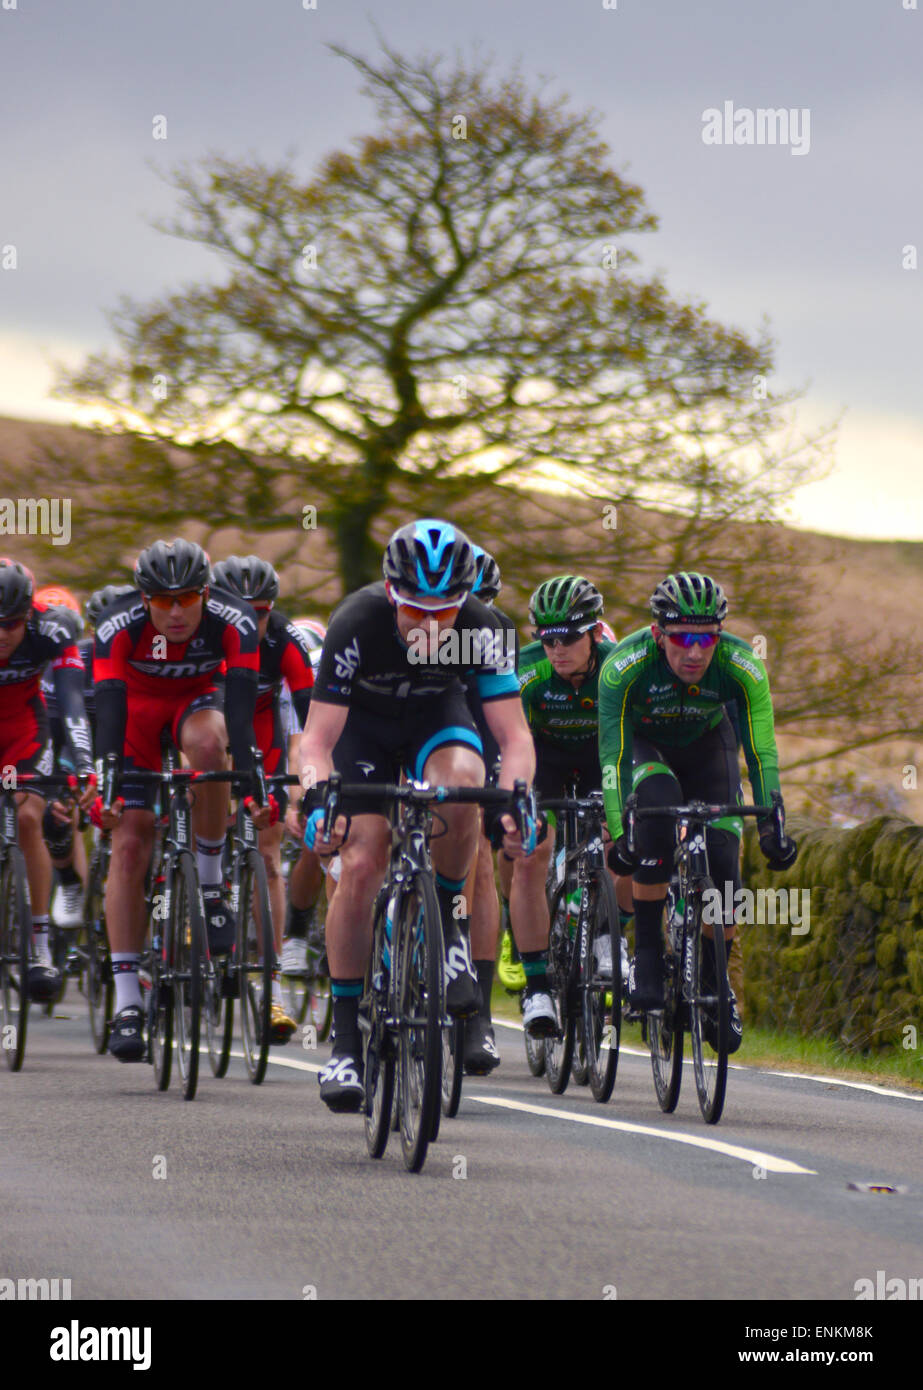 Tour De Yorkshire bike race winner Lars Petter Nordhaug from team SKY on May 03 2015 at Mytholmroyd. - Stock Image